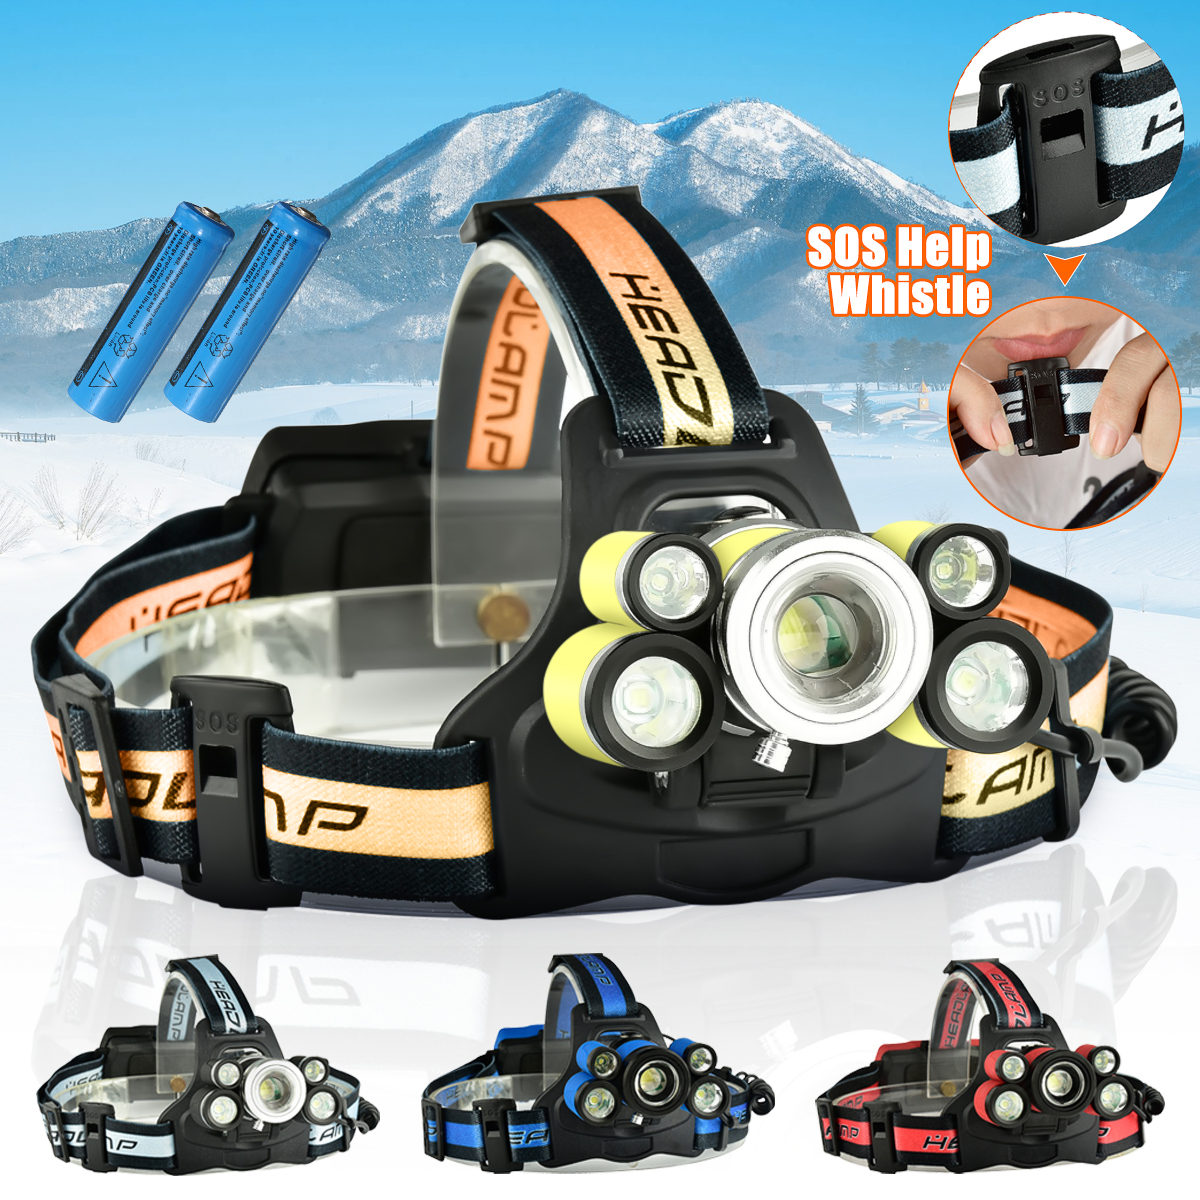 5000Lumens USB Rechargeable Headlight Headlight 5x T6 LED Head Torch 5 Modes with SOS Help Whistle for Night Light Emergency Light